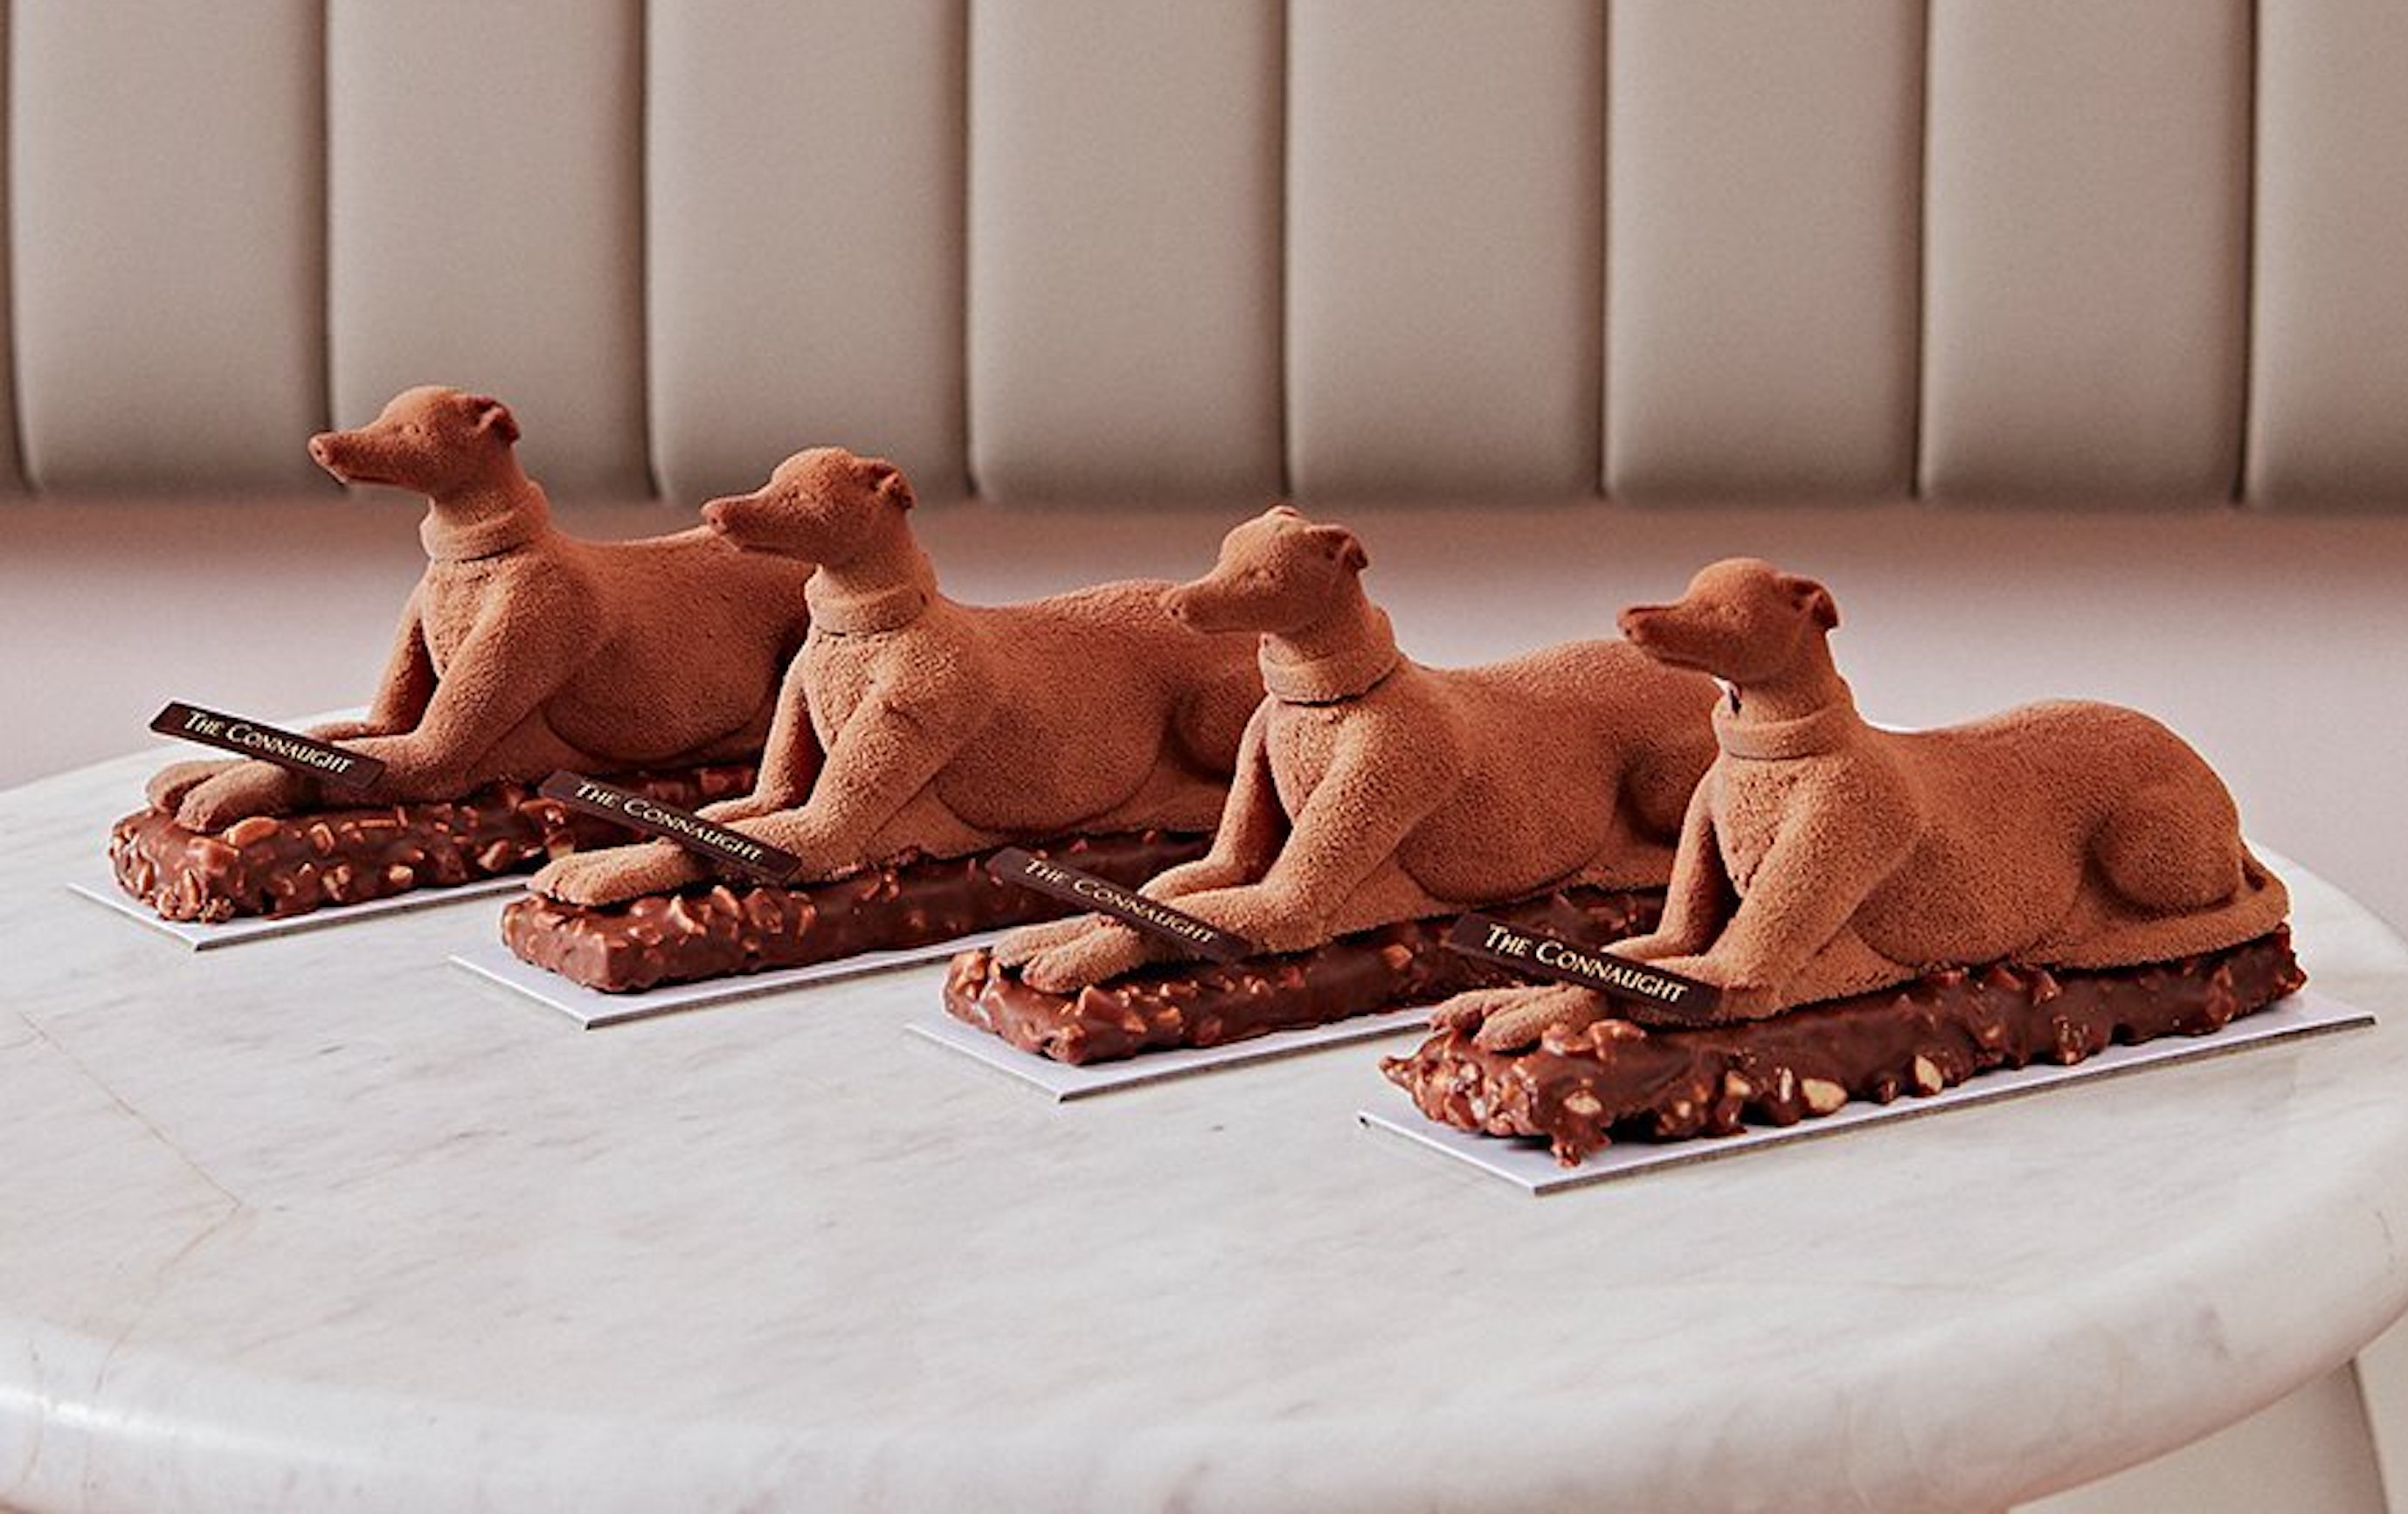 Four chocolate patisserie dogs sitting in a row on a marble effect tabletop